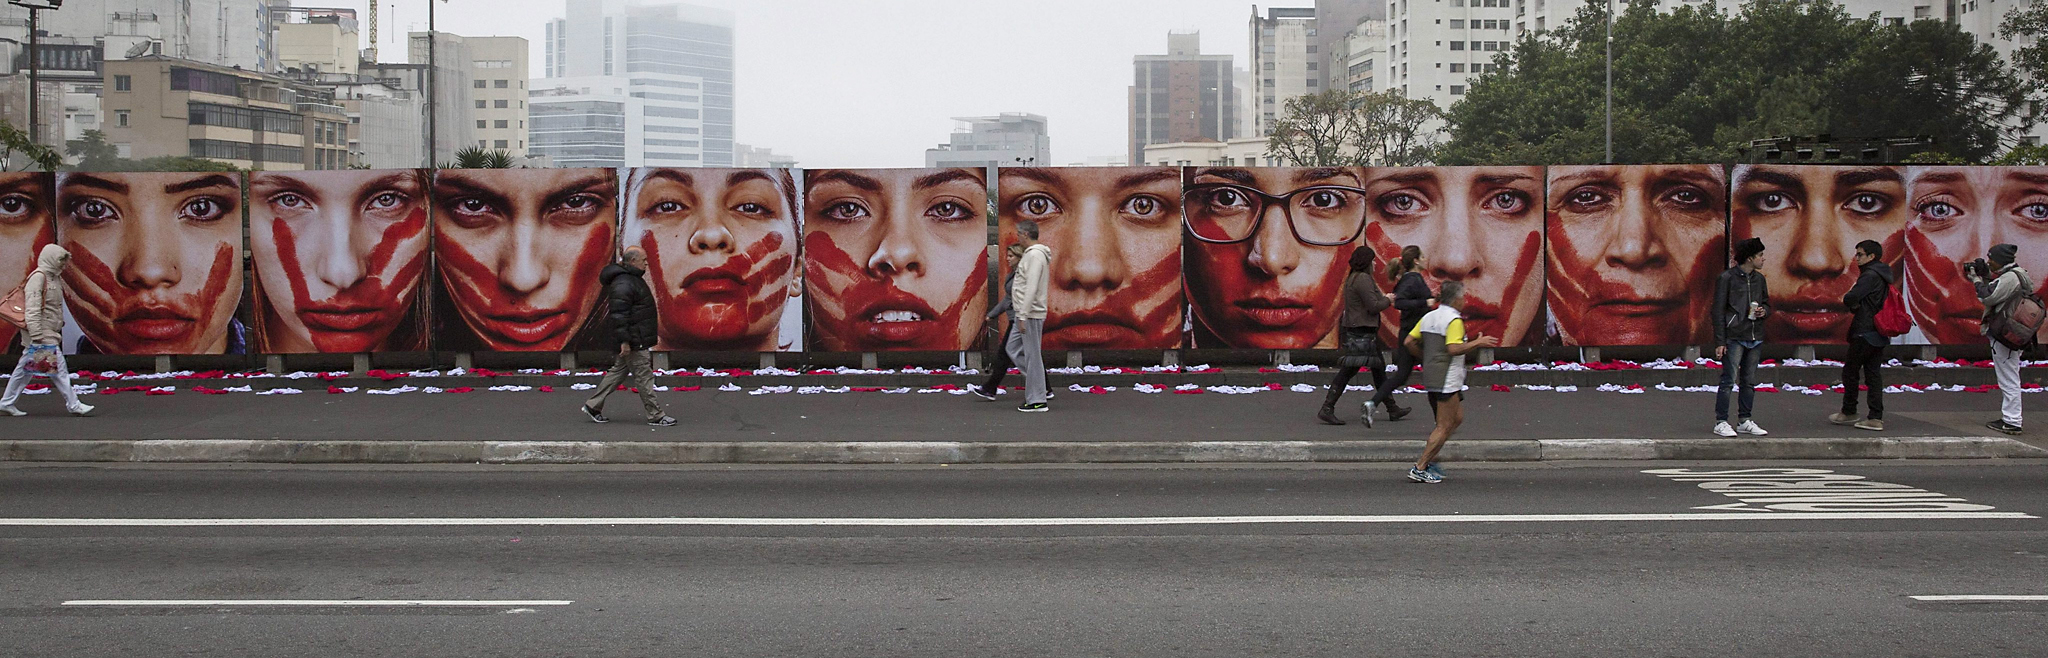 epa05354836 A group of people walk next to an installation by NGO Rio de Paz that shows pictures of models representing women victims of sexual attacks and 420 underpants that represent the 420 Brazilian women raped in the country every 72 hours, outside the Sao Paulo Arts Museum in Sao Paulo, Brazil, 10 June 2016.  EPA/SEBASTIAO MOREIRA